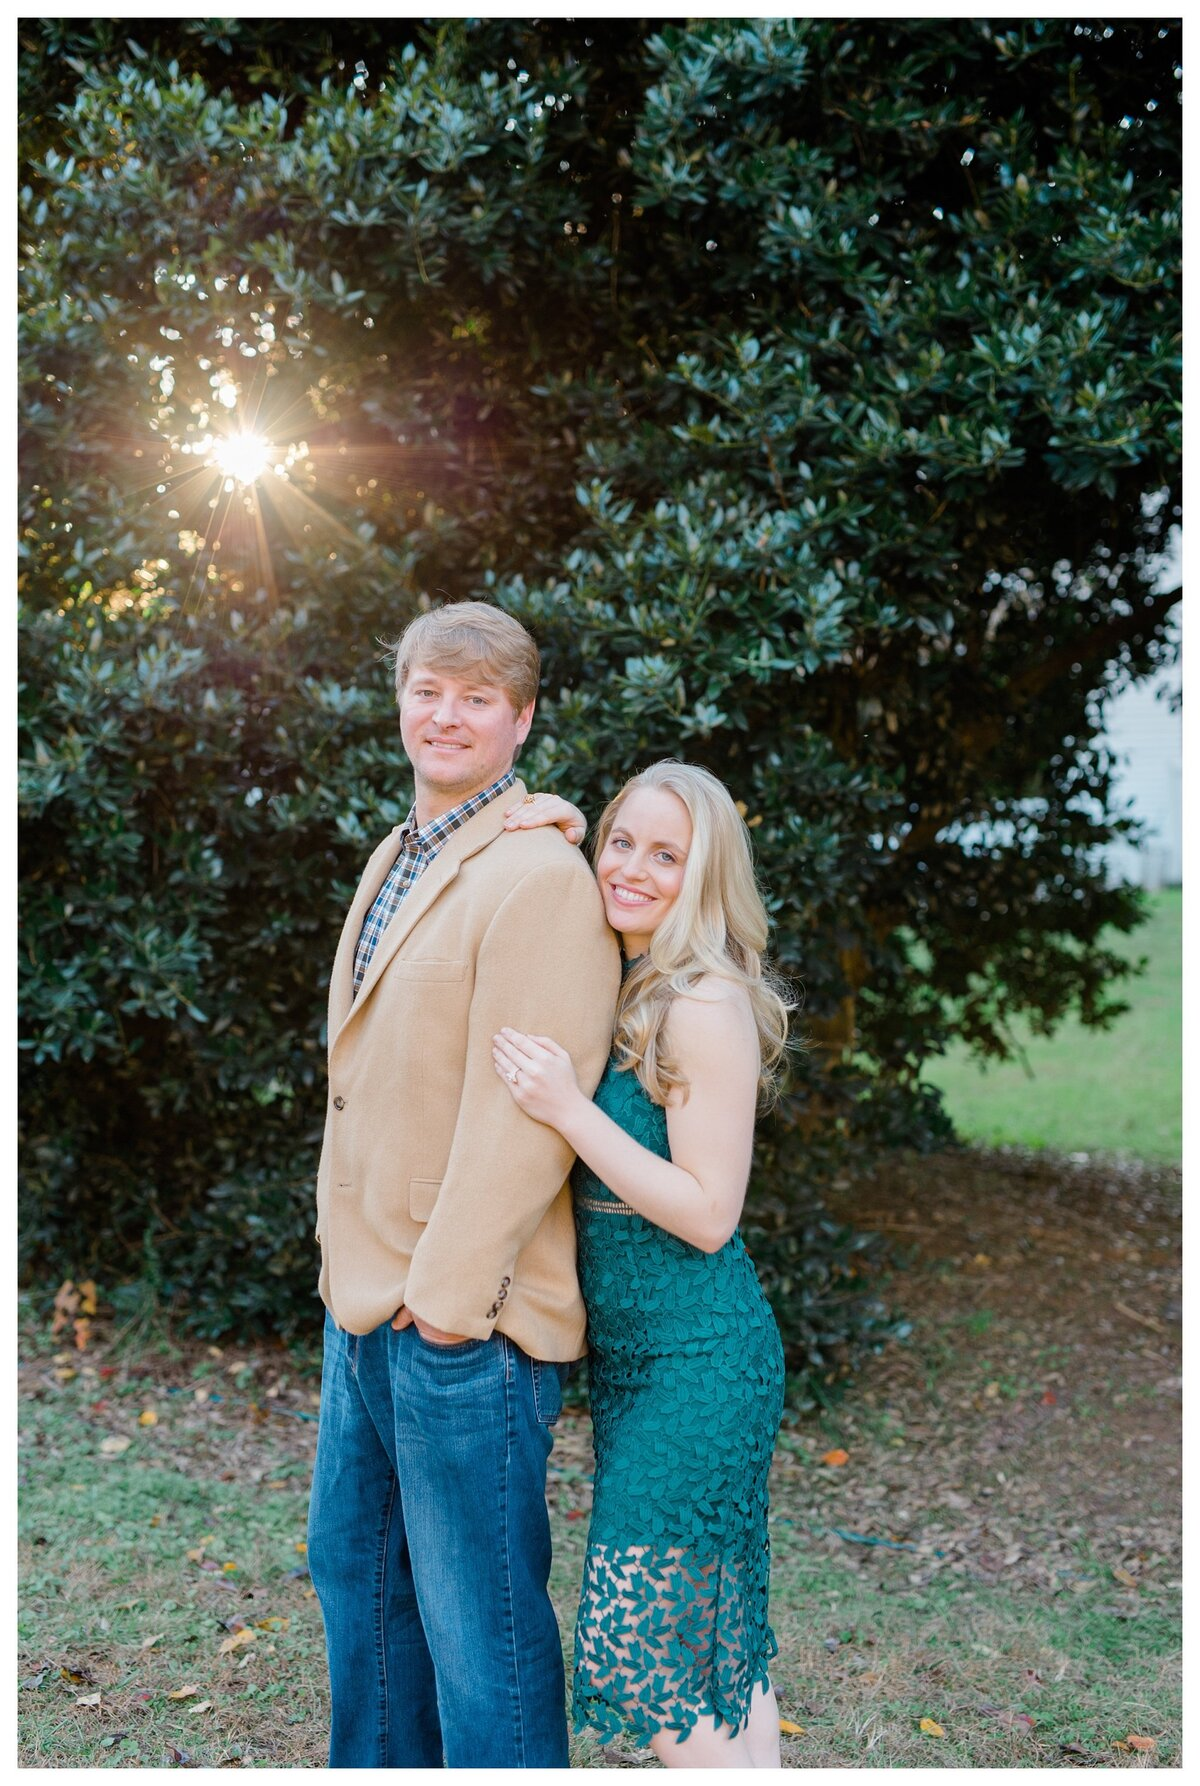 canady-engagements-atlanta-wedding-photographer-25